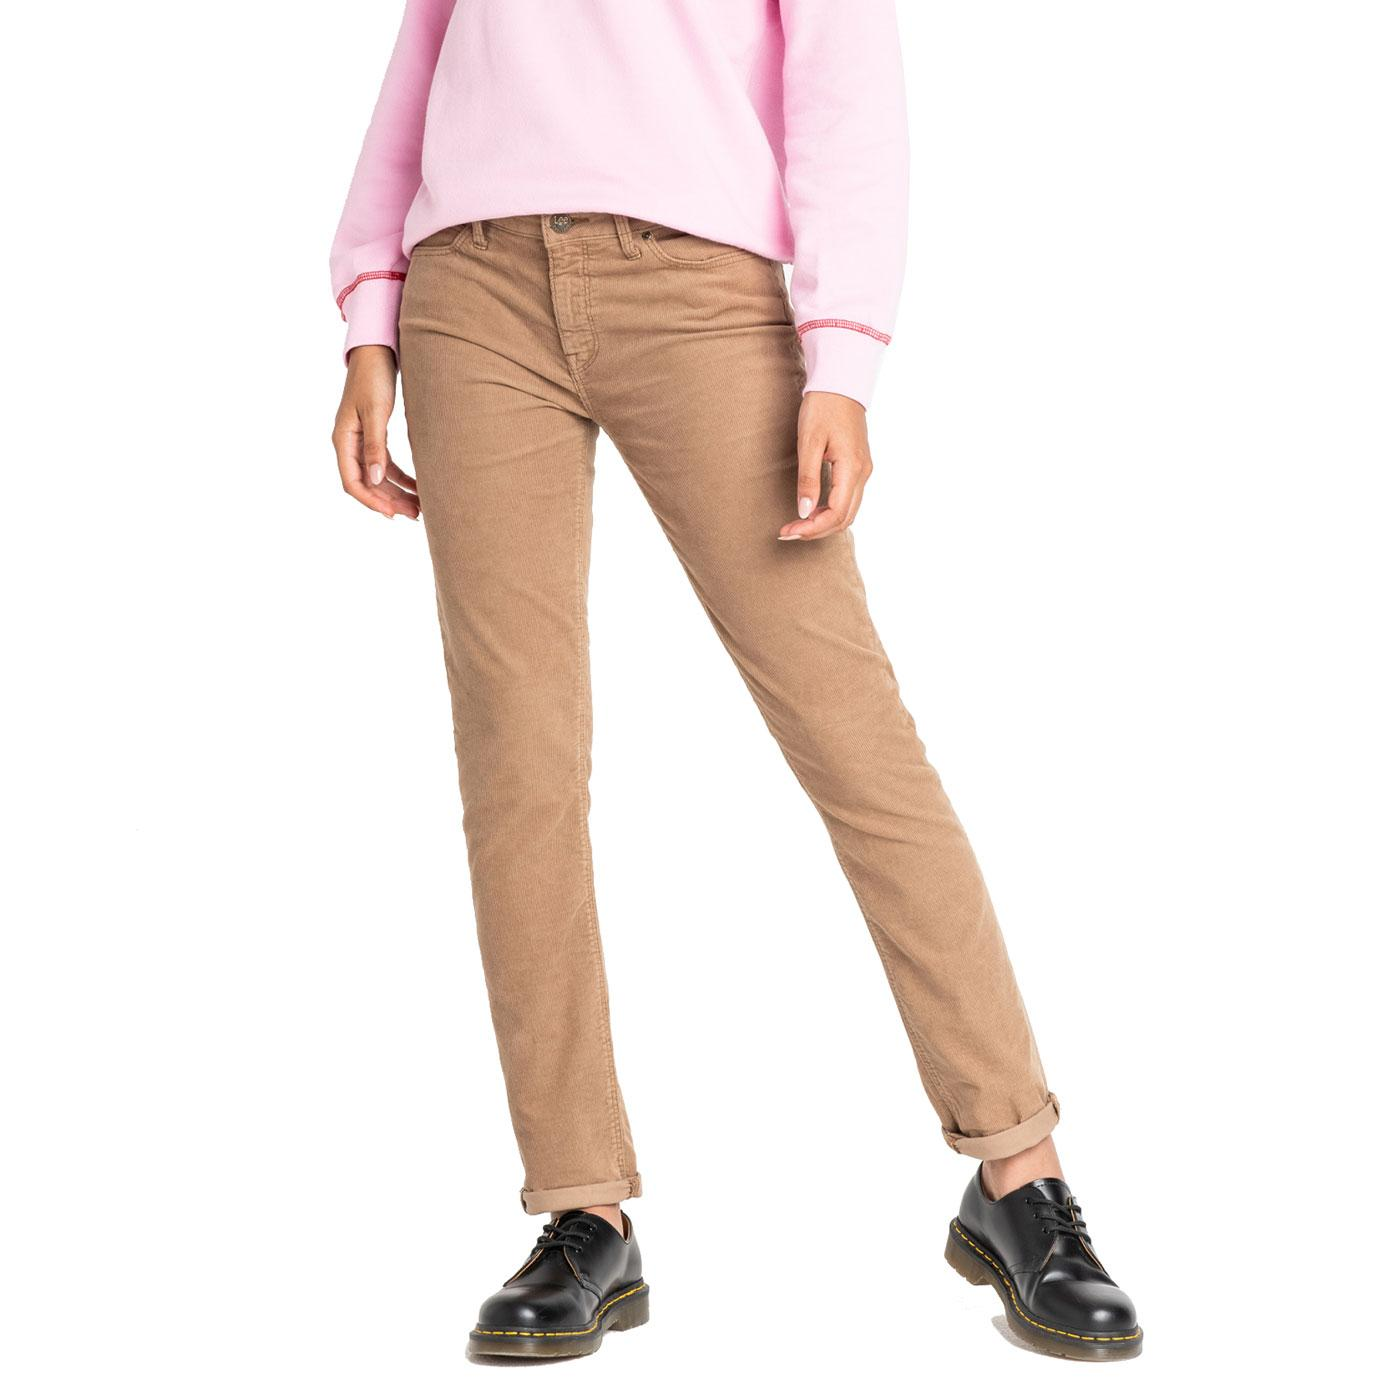 Elly LEE High Waist Slim Straight Cord Jeans LG